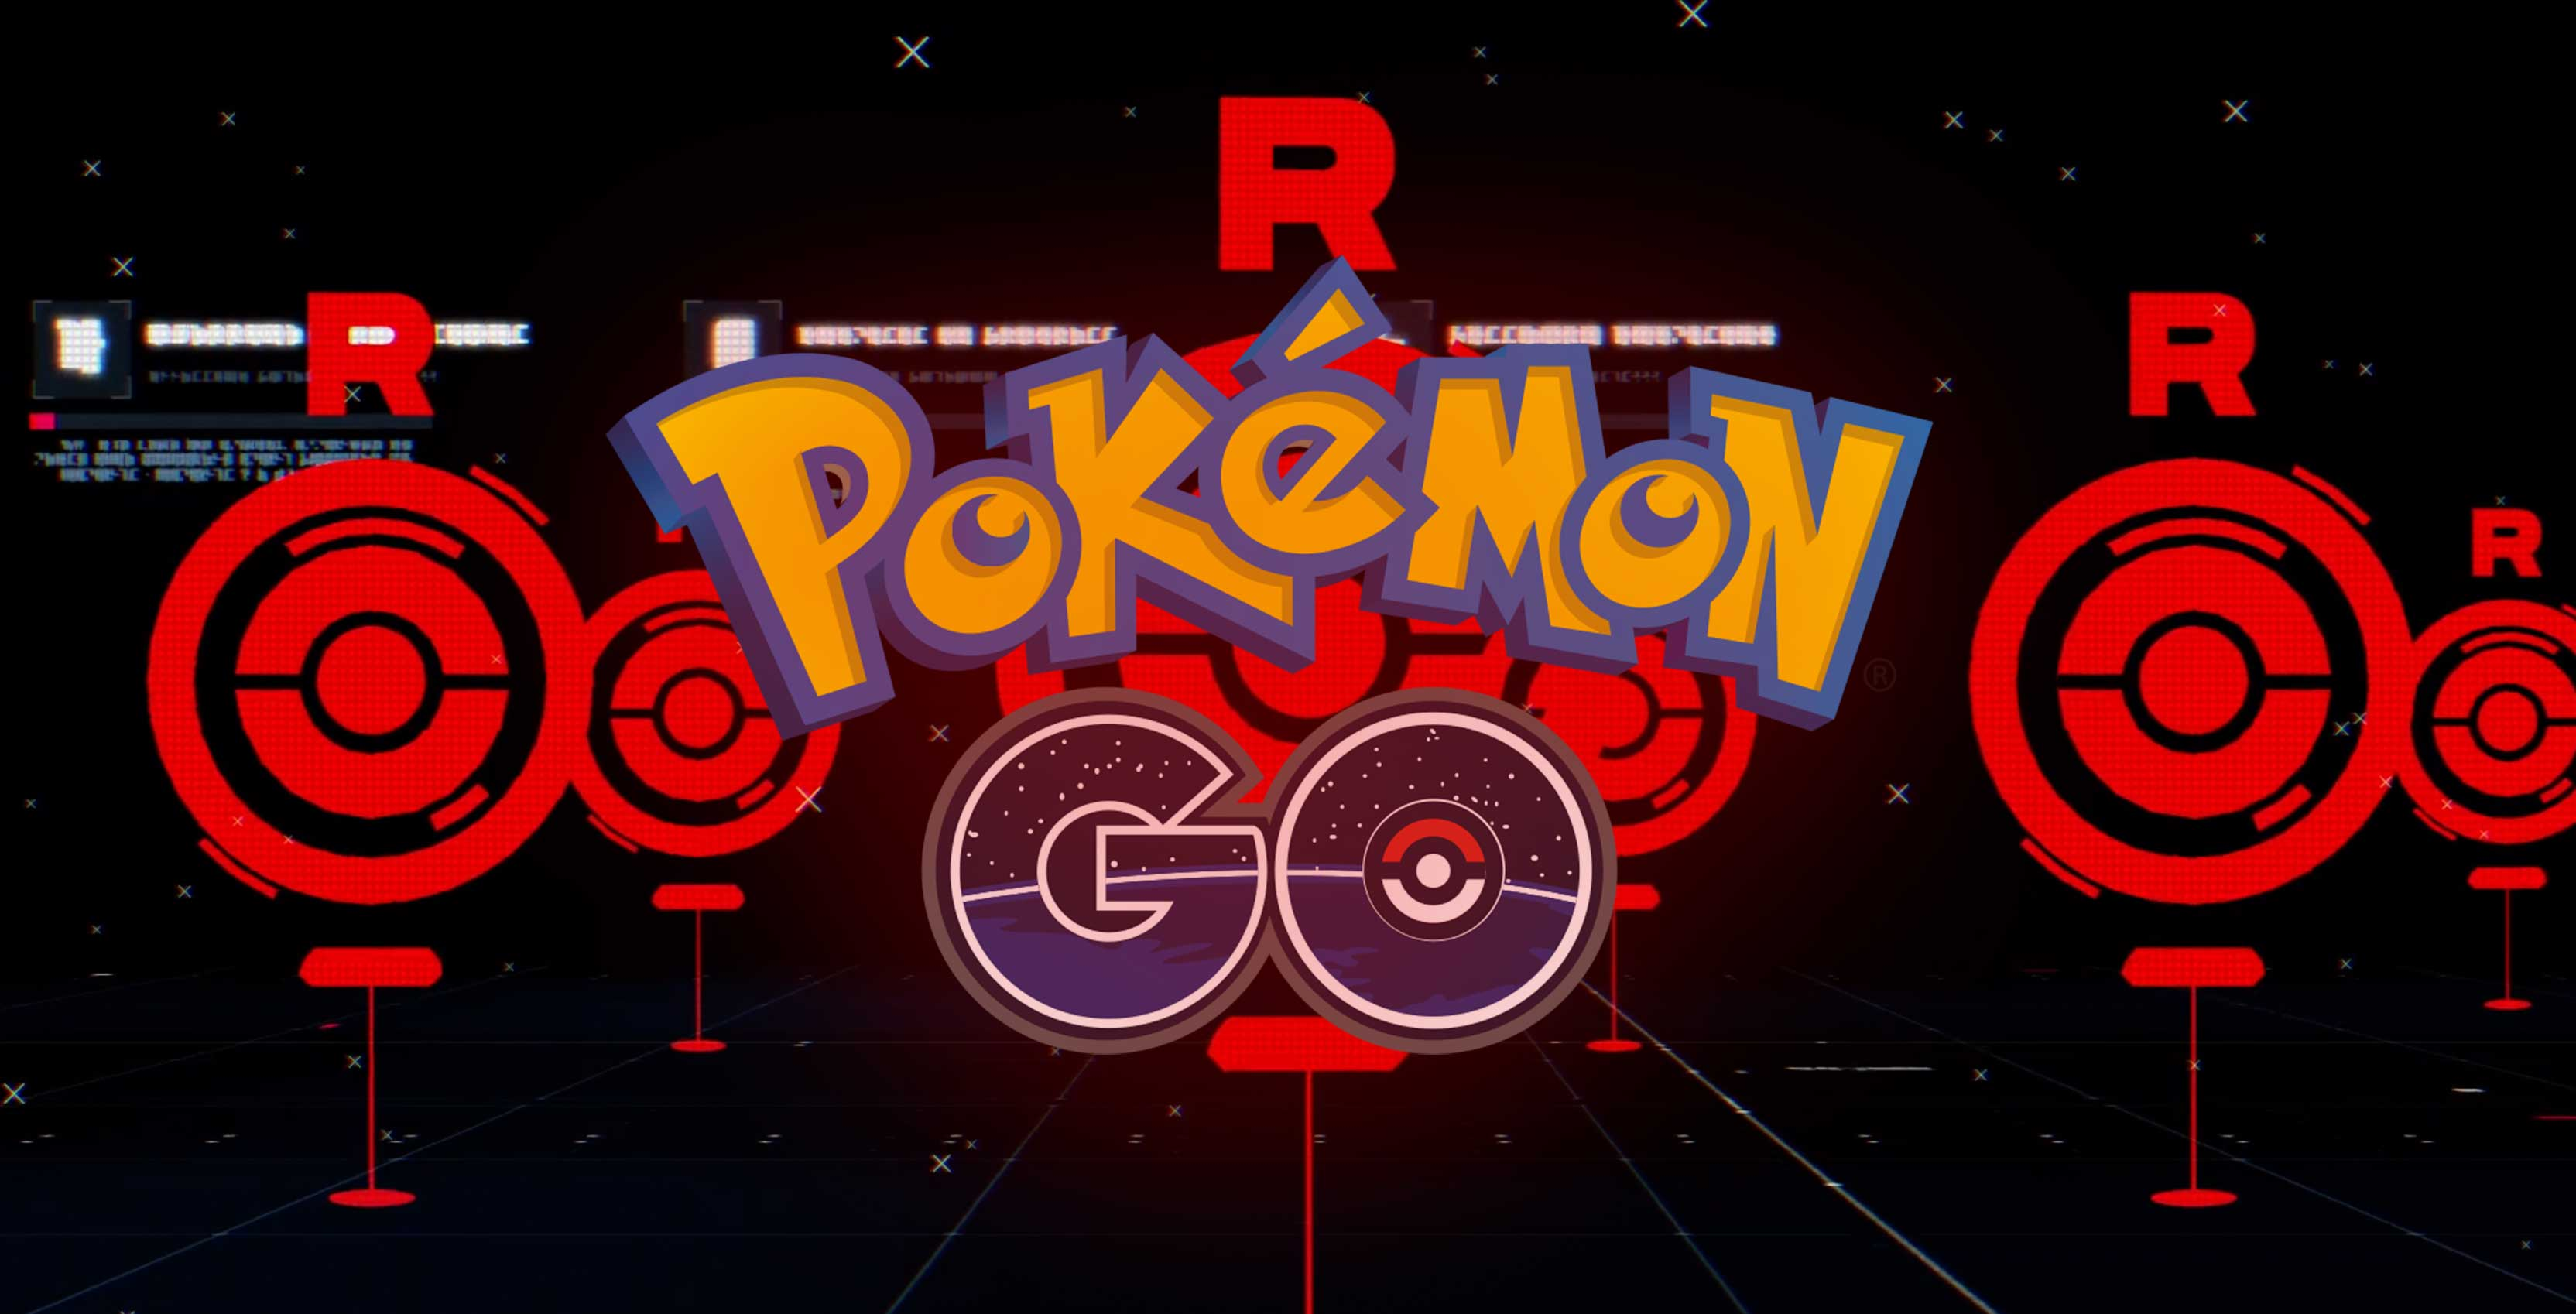 It looks like Team Rocket Leader Giovanni is coming to Pokémon Go